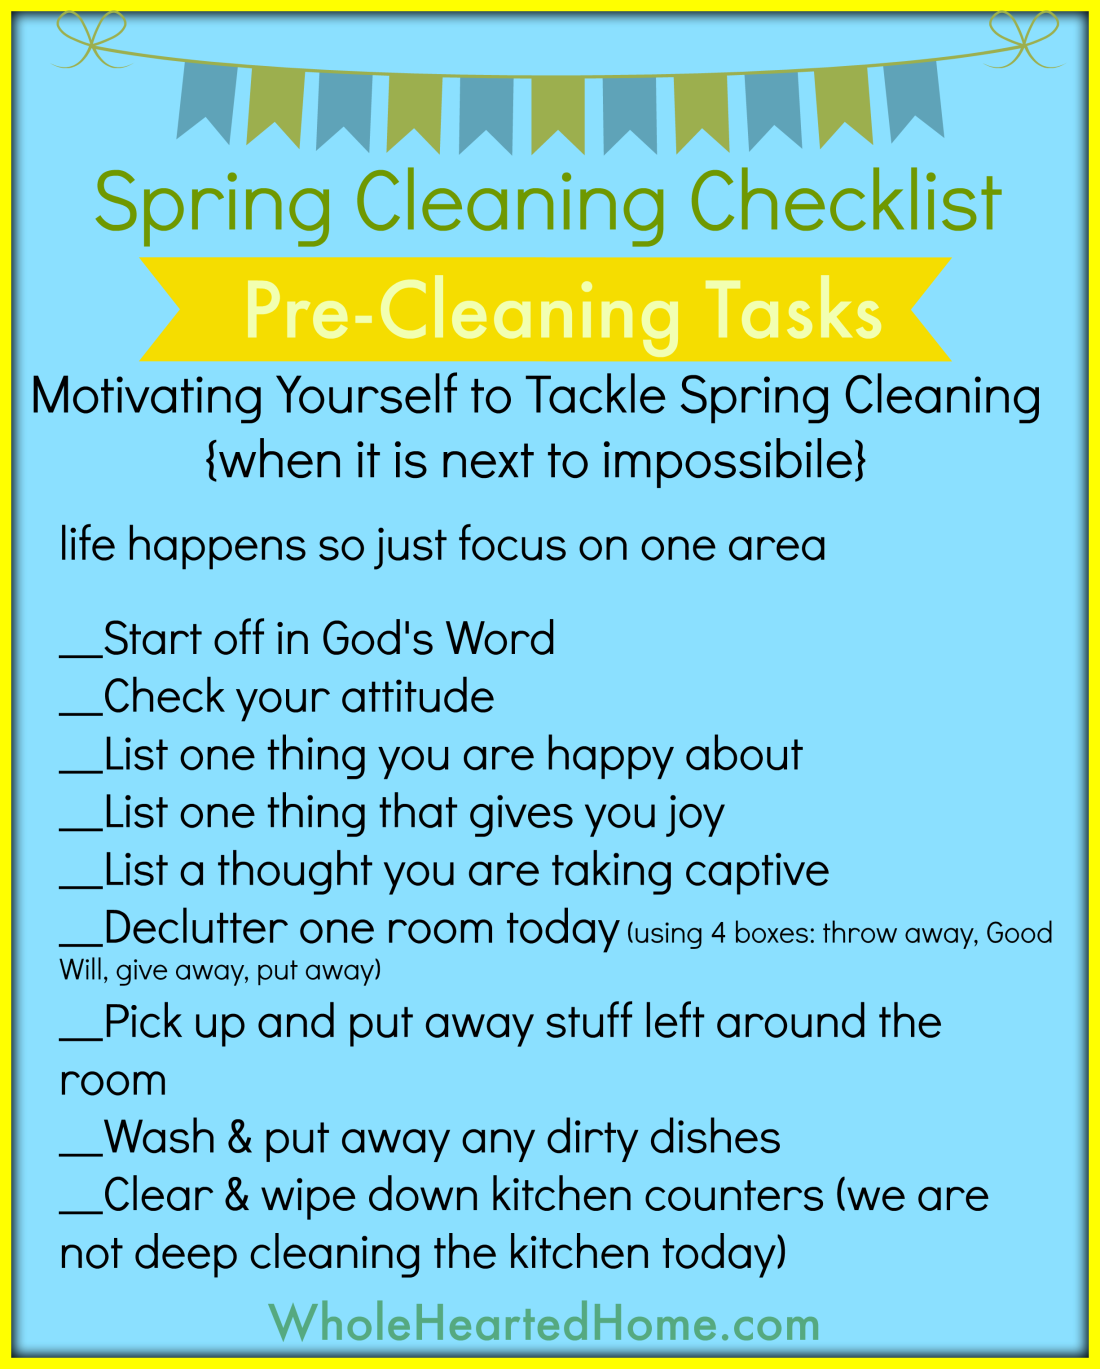 Spring Cleaning Checklist - Pre-Cleaning Tasks